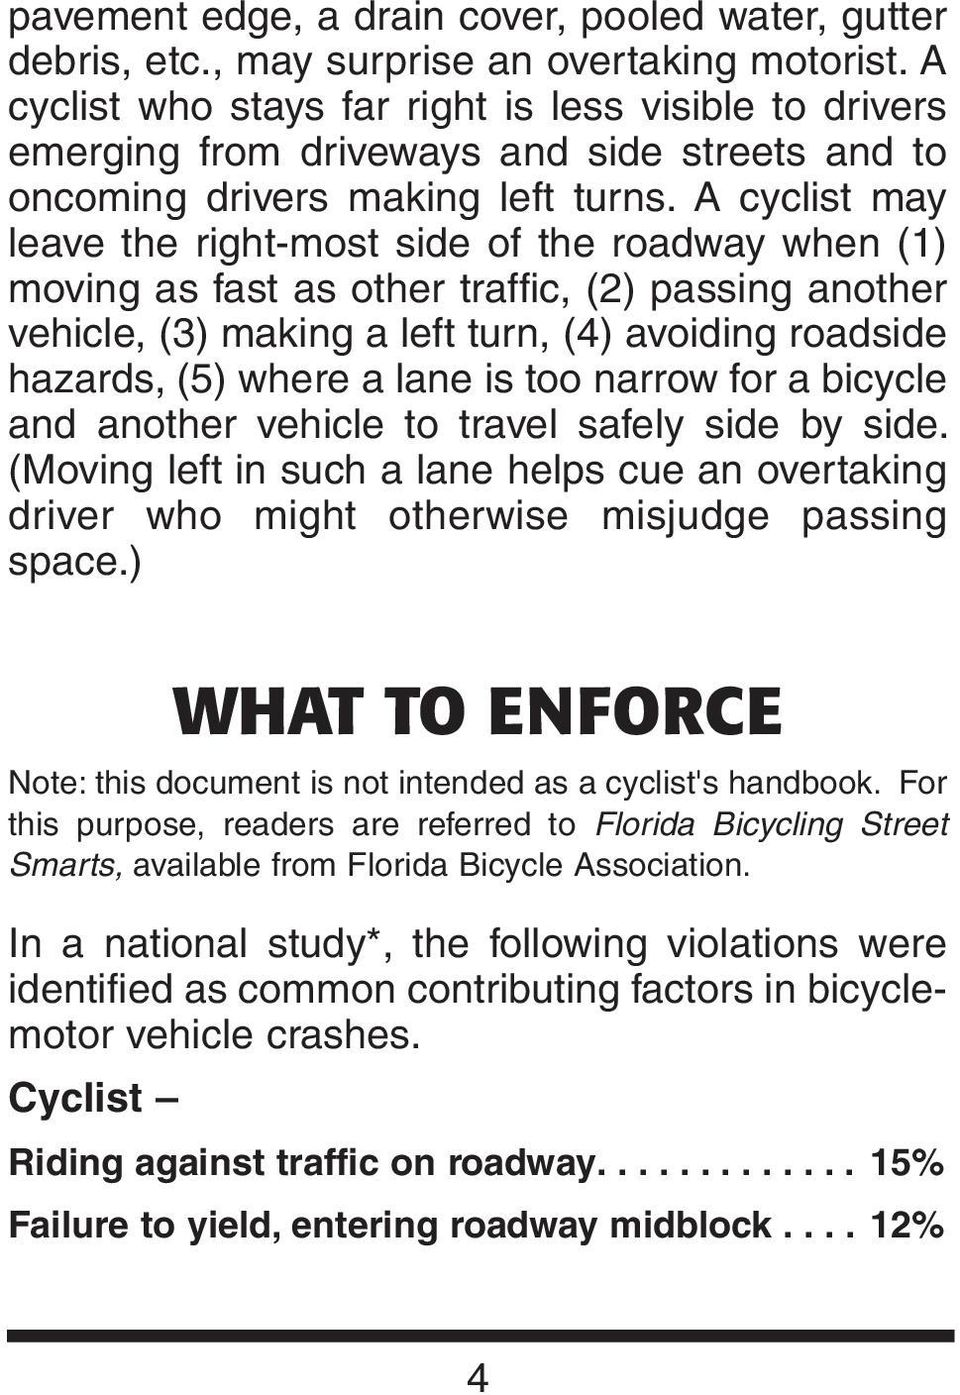 A cyclist may leave the right-most side of the roadway when (1) moving as fast as other traffic, (2) passing another vehicle, (3) making a left turn, (4) avoiding roadside hazards, (5) where a lane